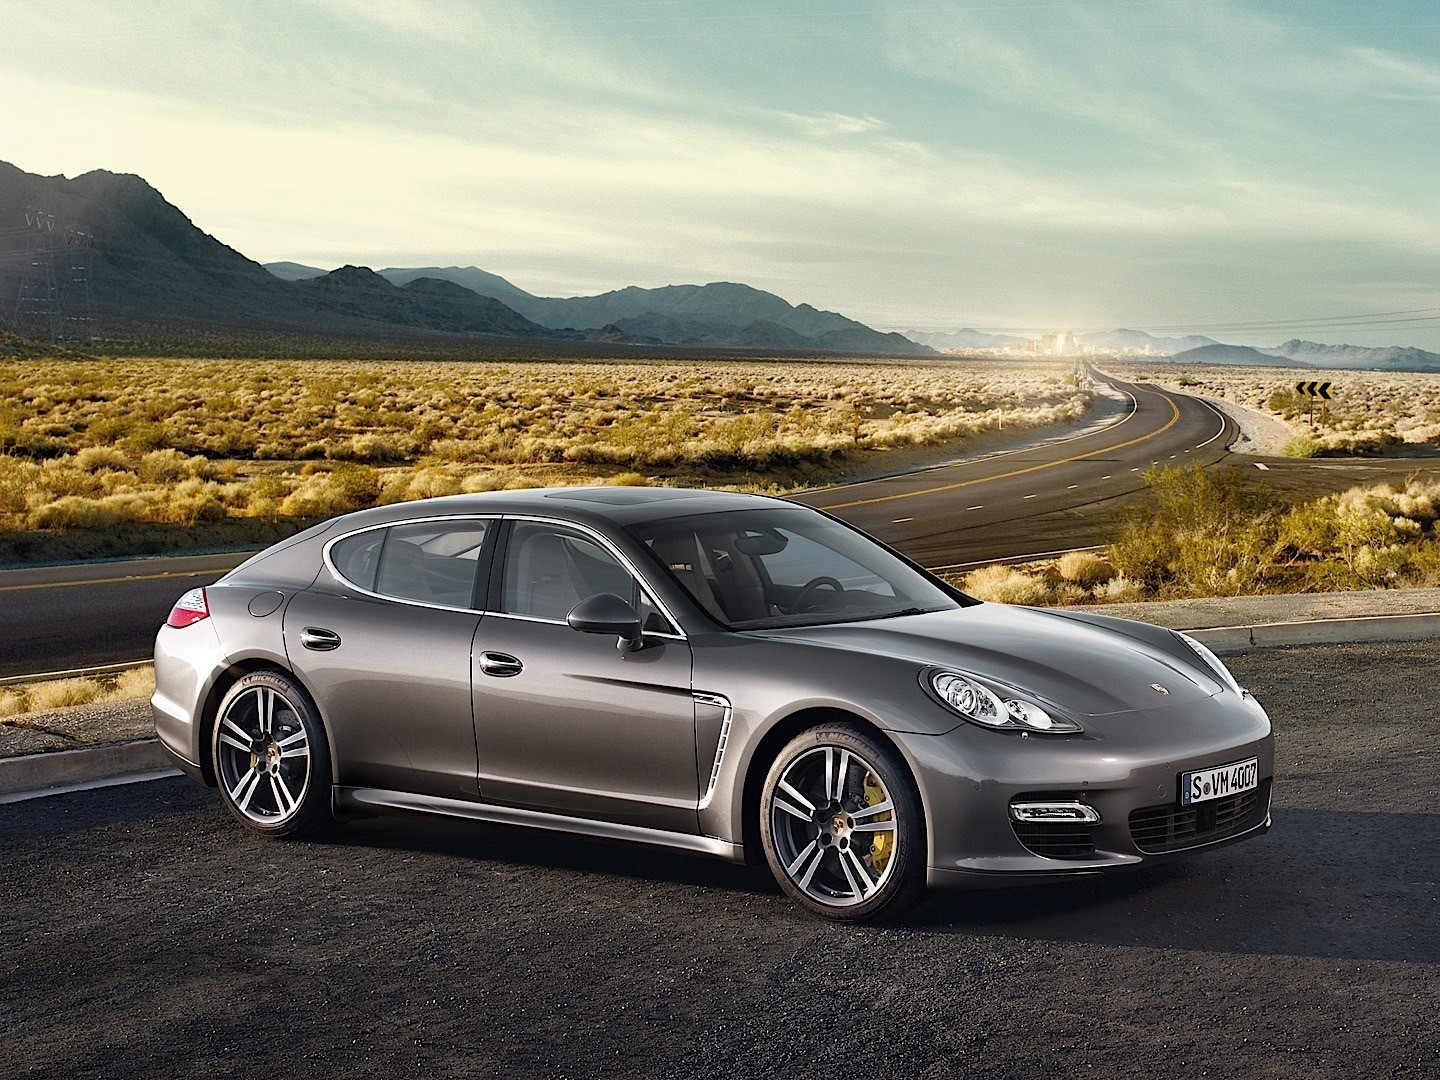 porsche panamera turbo s 907 specs 2011 2012 2013 autoevolution. Black Bedroom Furniture Sets. Home Design Ideas